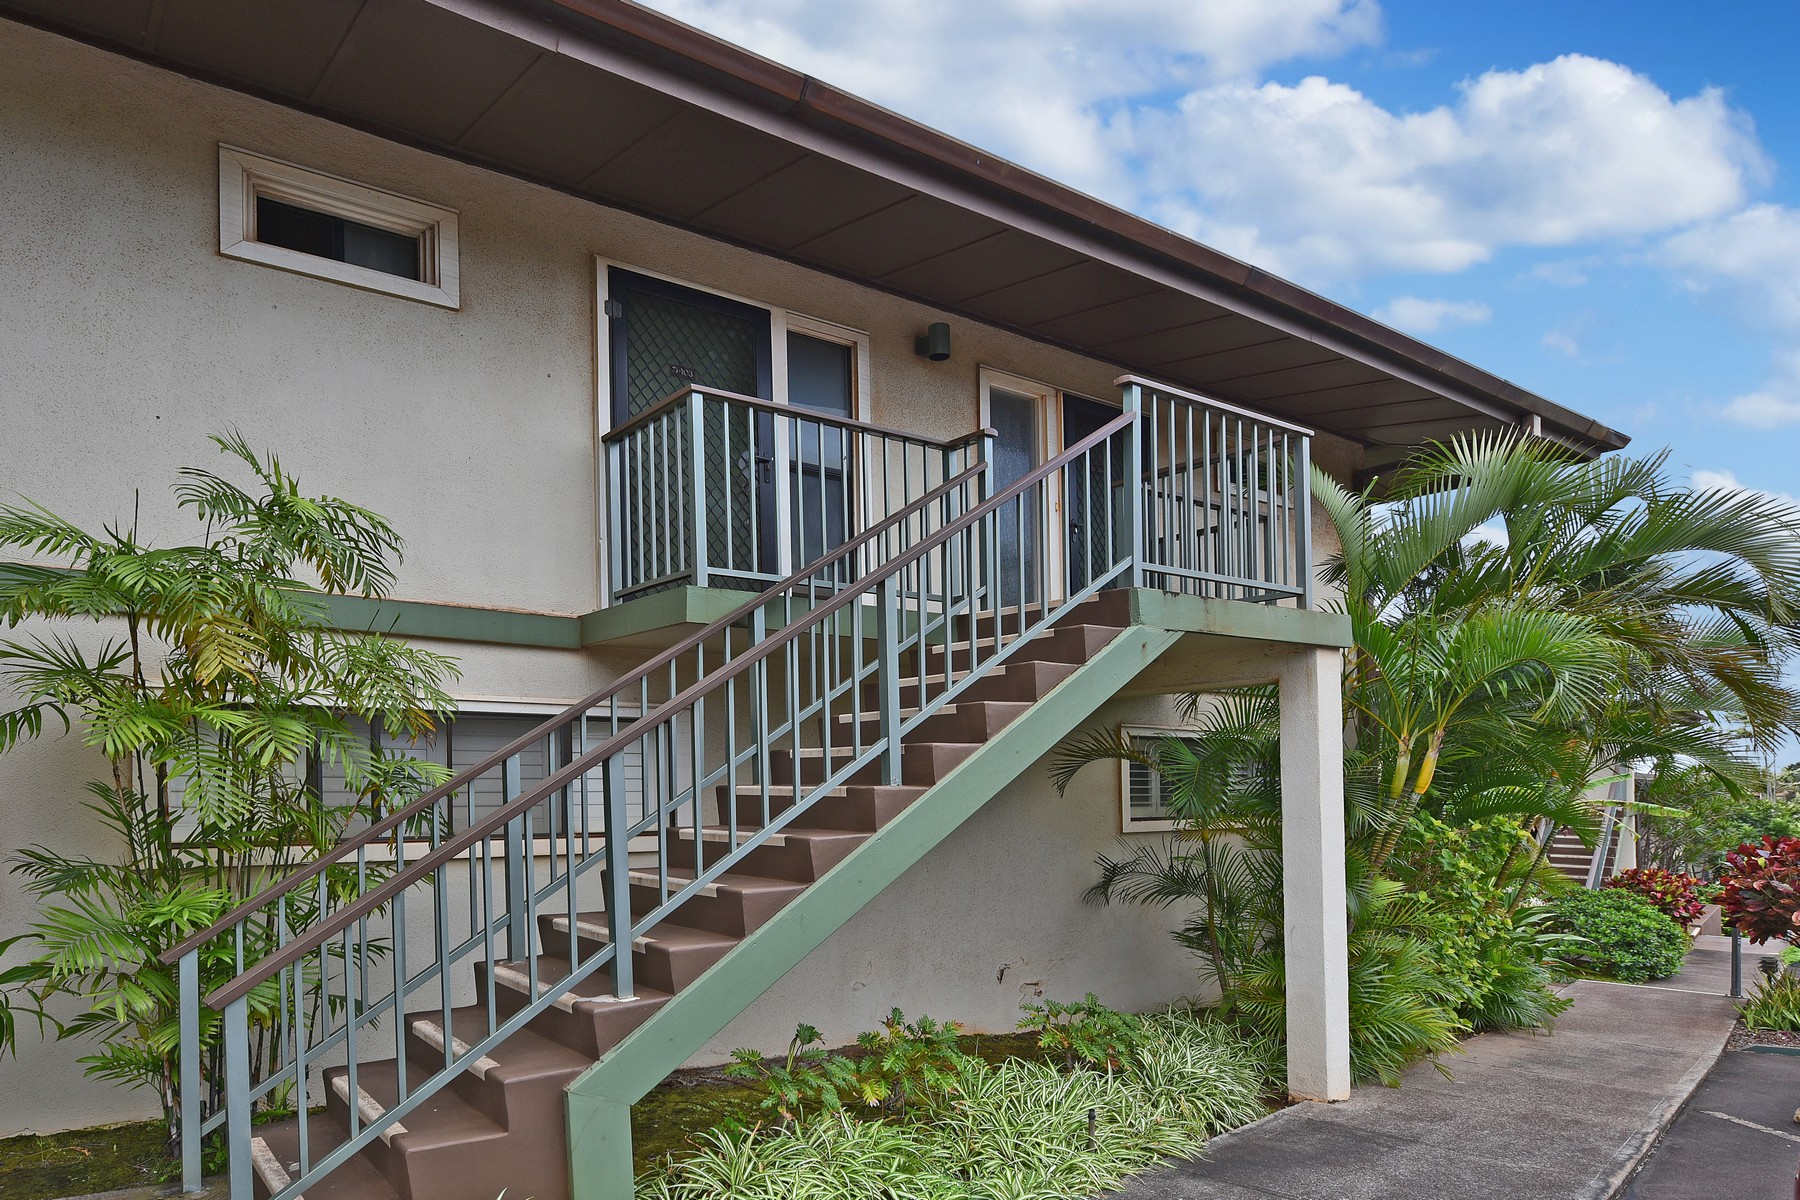 Condominiums for Sale at Imagine Relaxing in a Garden Setting and Pool Just Steps Away 3788 L. Honoapiilani Rd, Hale Royale D104 Lahaina, Hawaii 96761 United States